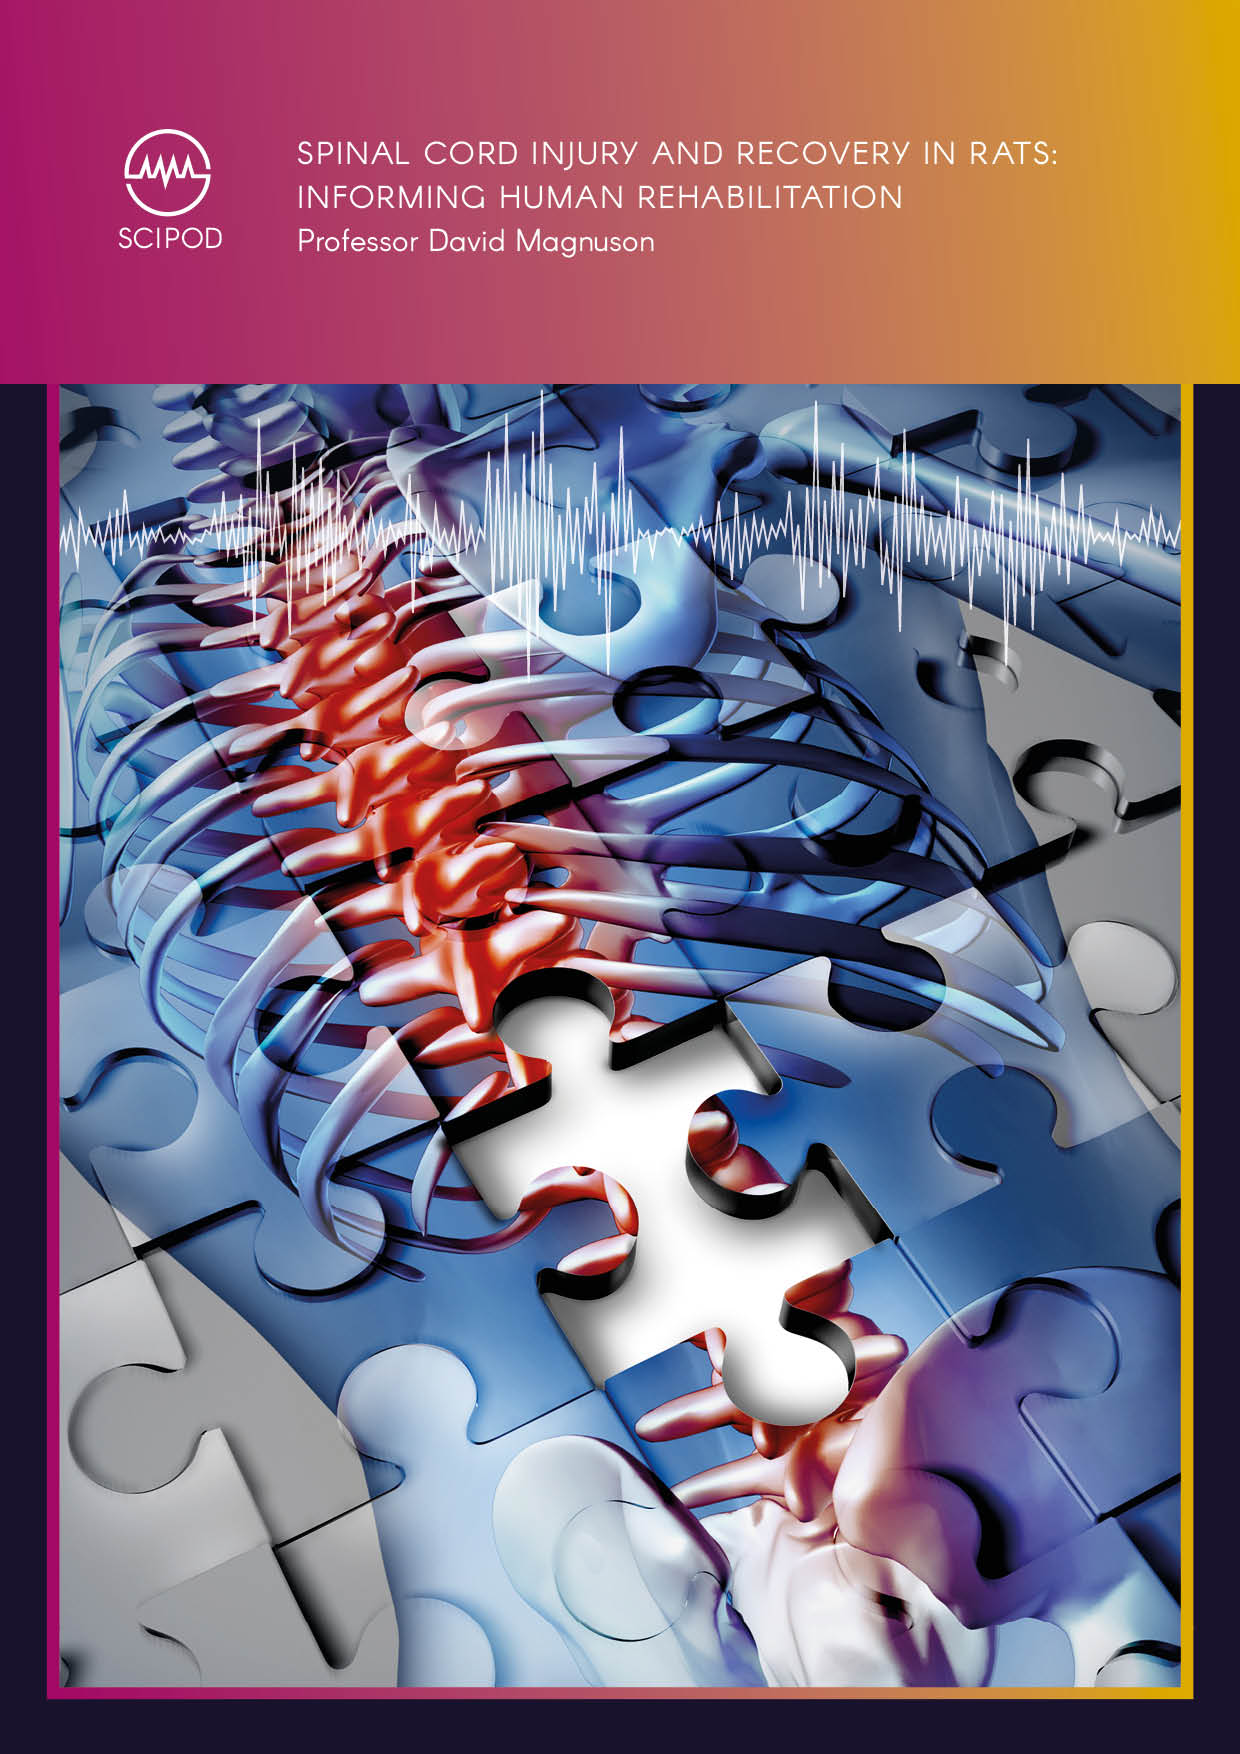 Spinal Cord Injury and Recovery in Rats Informing Human Rehabilitation – Professor David Magnuson, University of Louisville